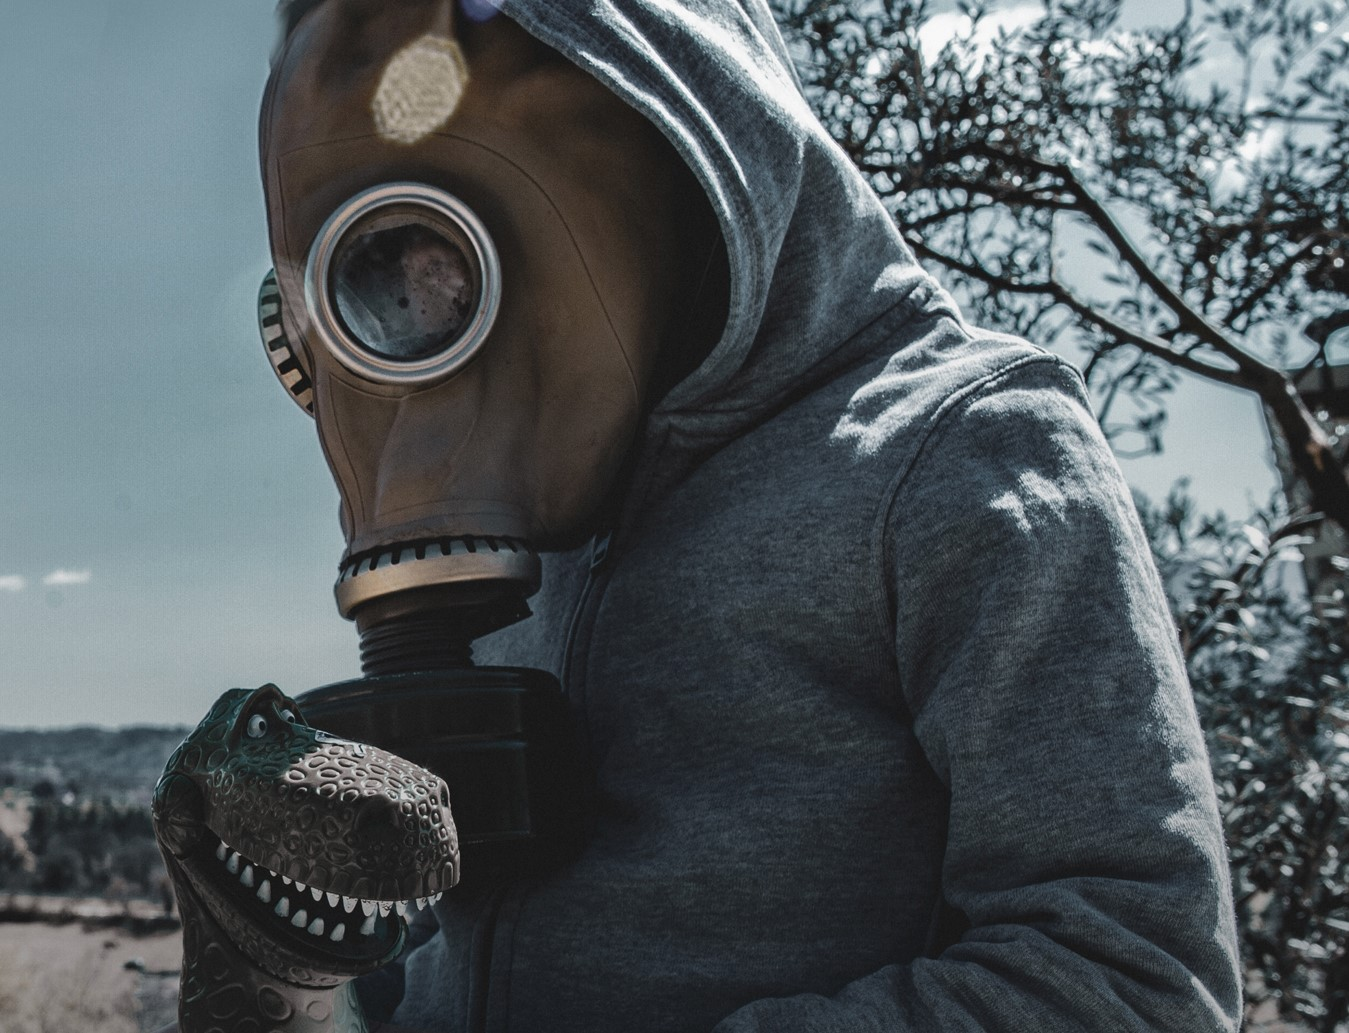 CHERNOBYL 35 Years Later by Desiderio